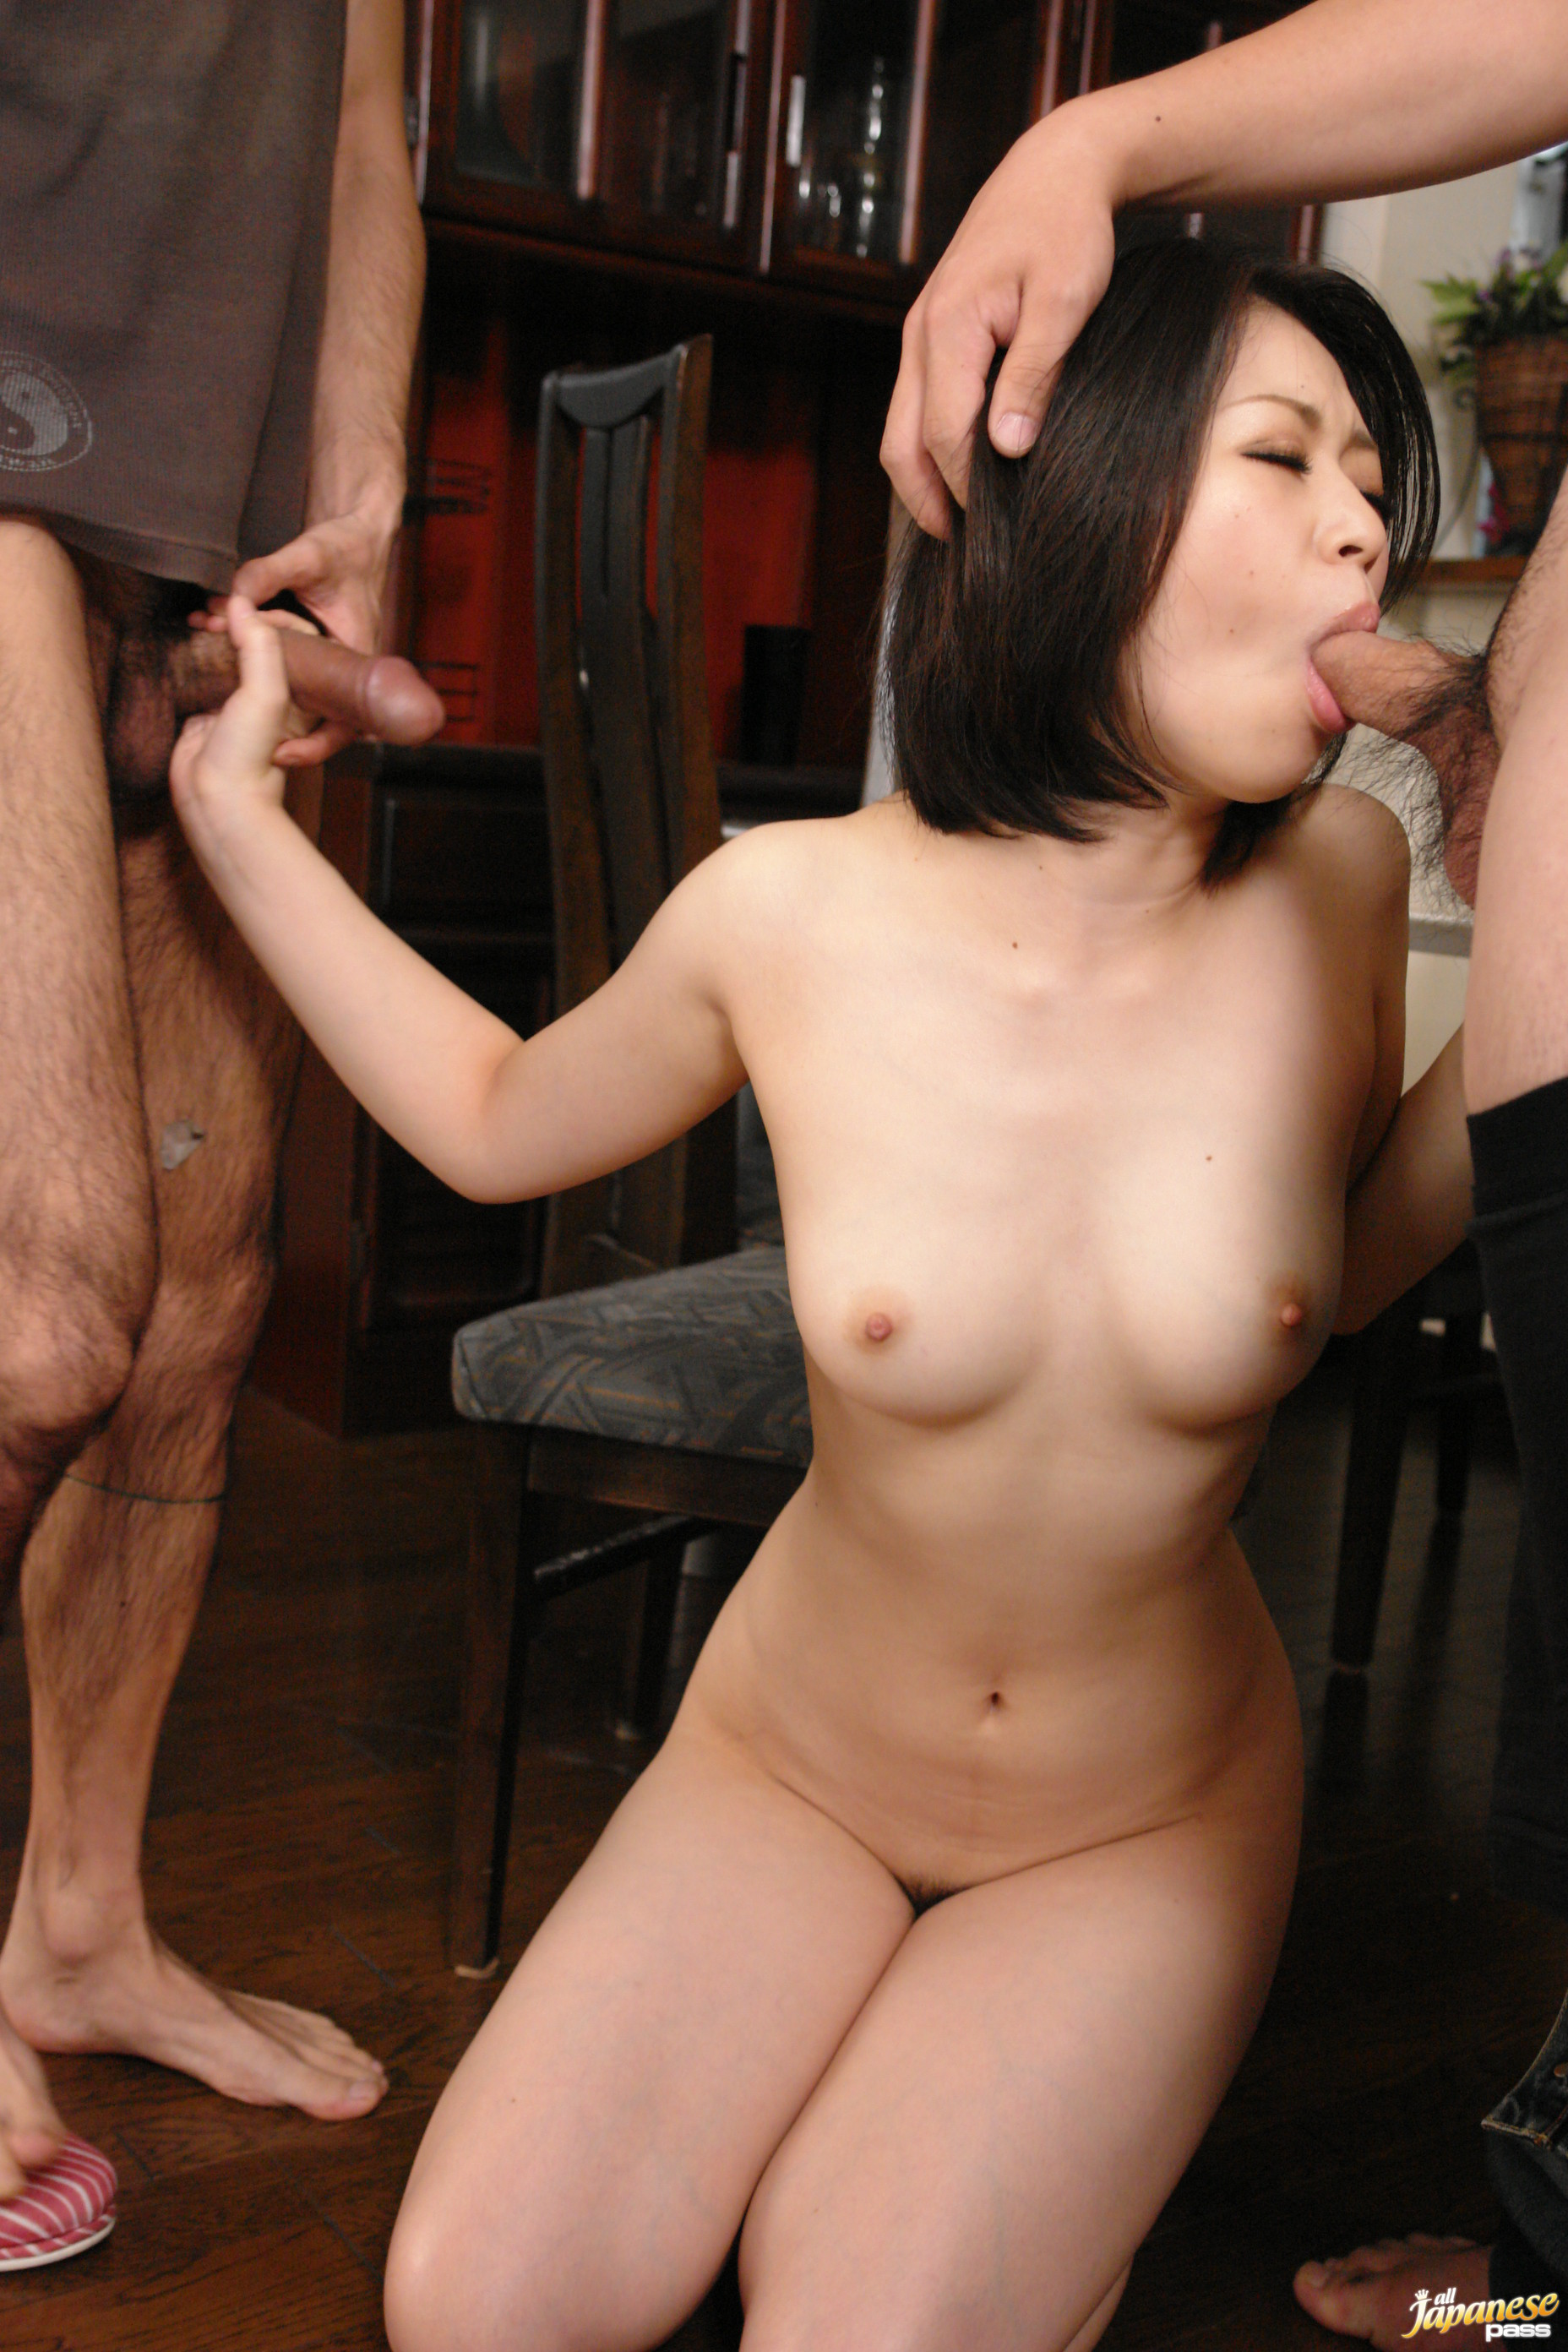 Yuuka Tsubasa Japanese Call Girl Enjoys Sucking Dick 54961-3962